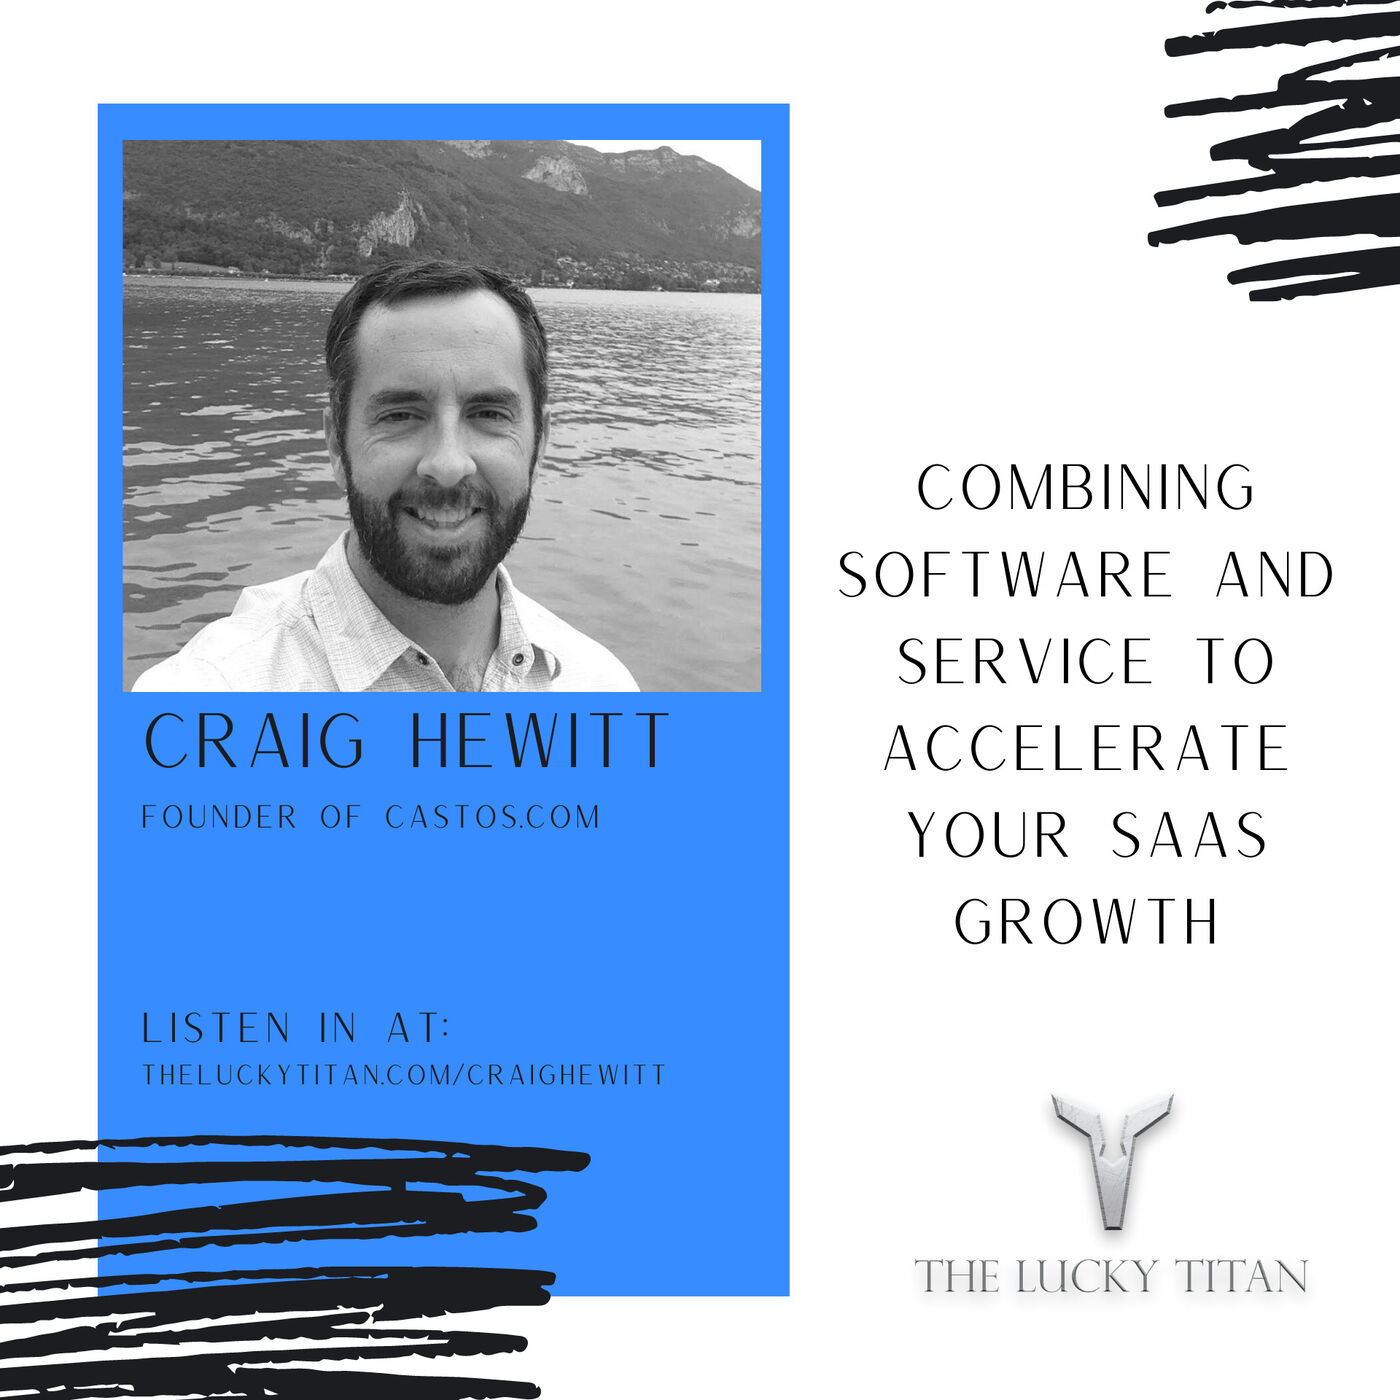 Combining software and service to accelerate your SaaS growth With Craig Hewitt